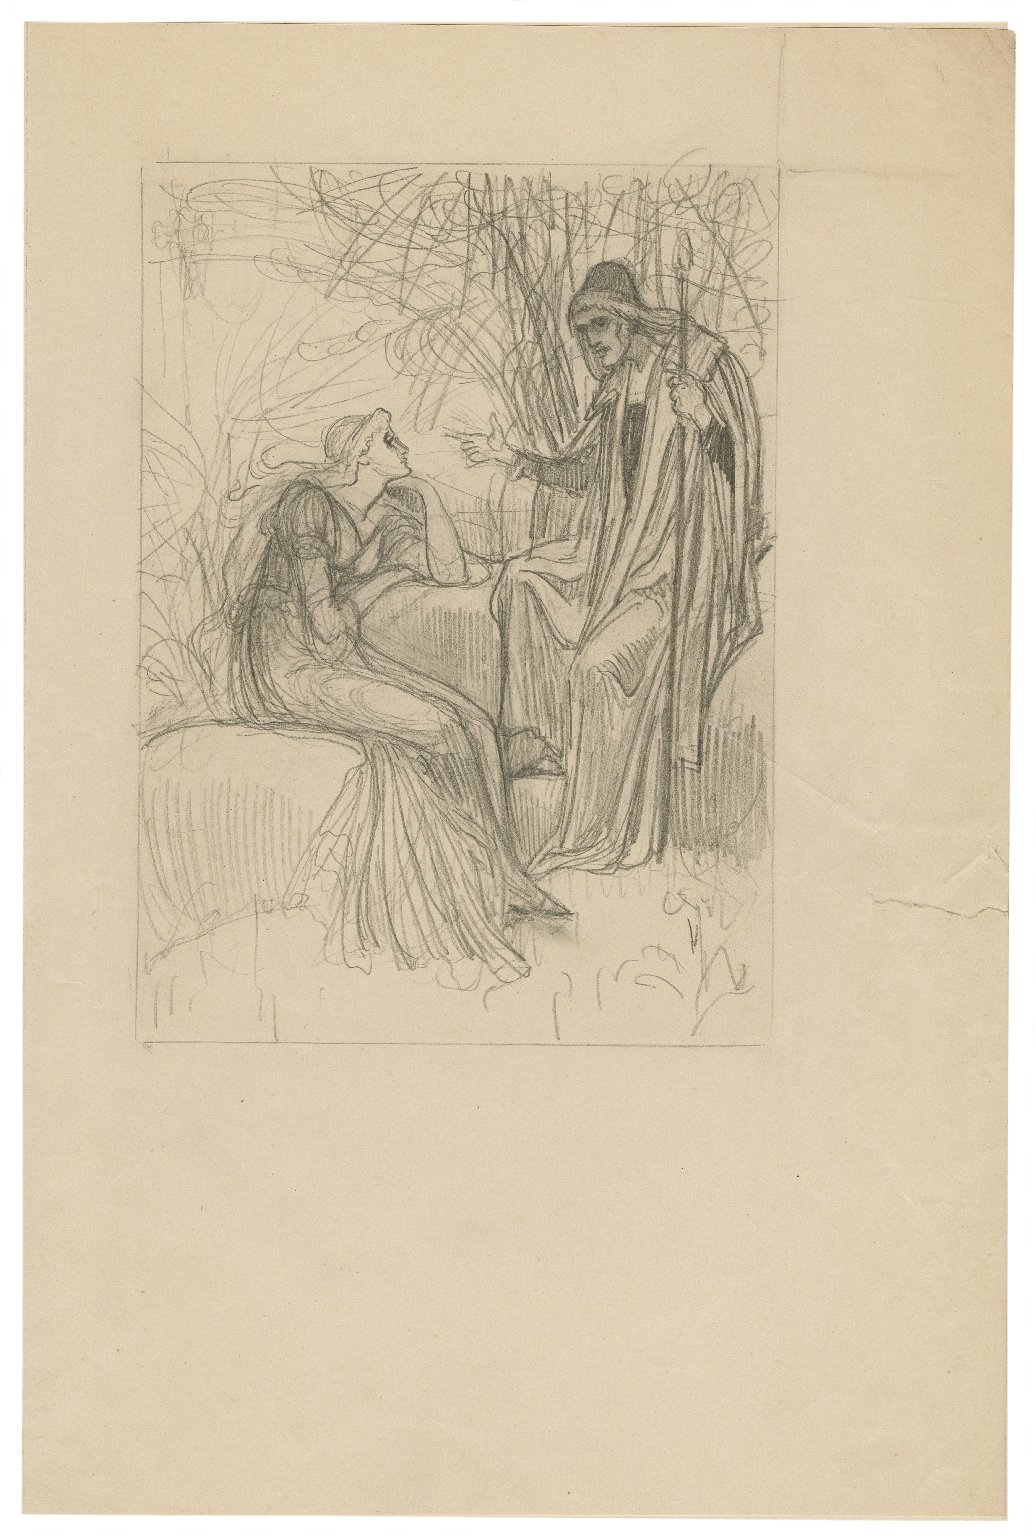 [Tempest, act I, scene II, Prospero: by accident most strange, bountiful fortune, now my dear lady, hath mine enemies brought to this shore] [graphic] / [Walter Crane].